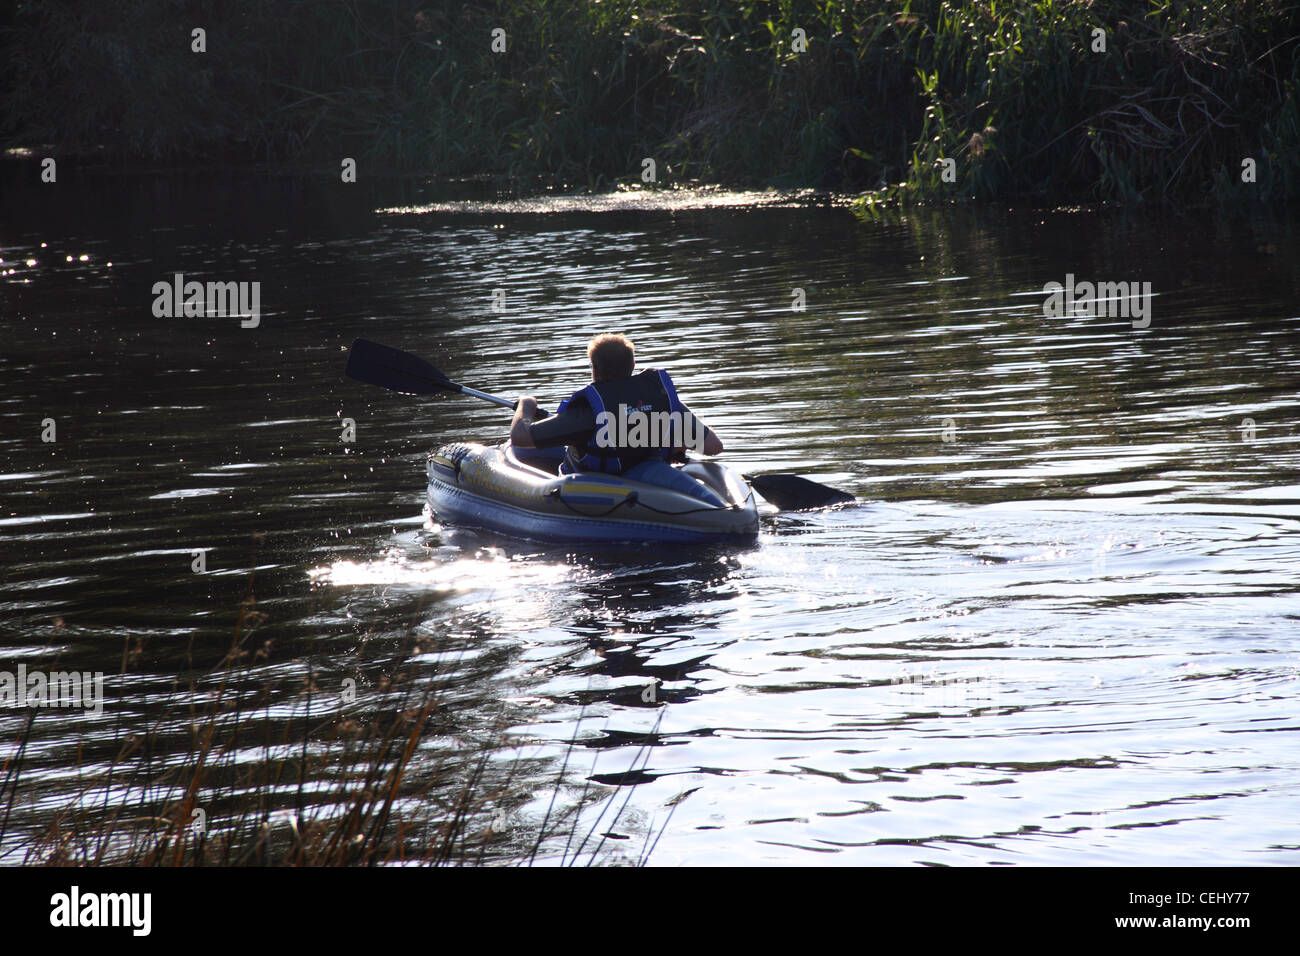 A man wearing a life jacket paddles a kayak away from camera, water splashing from the paddle, the river Avon, Bidford - Stock Image